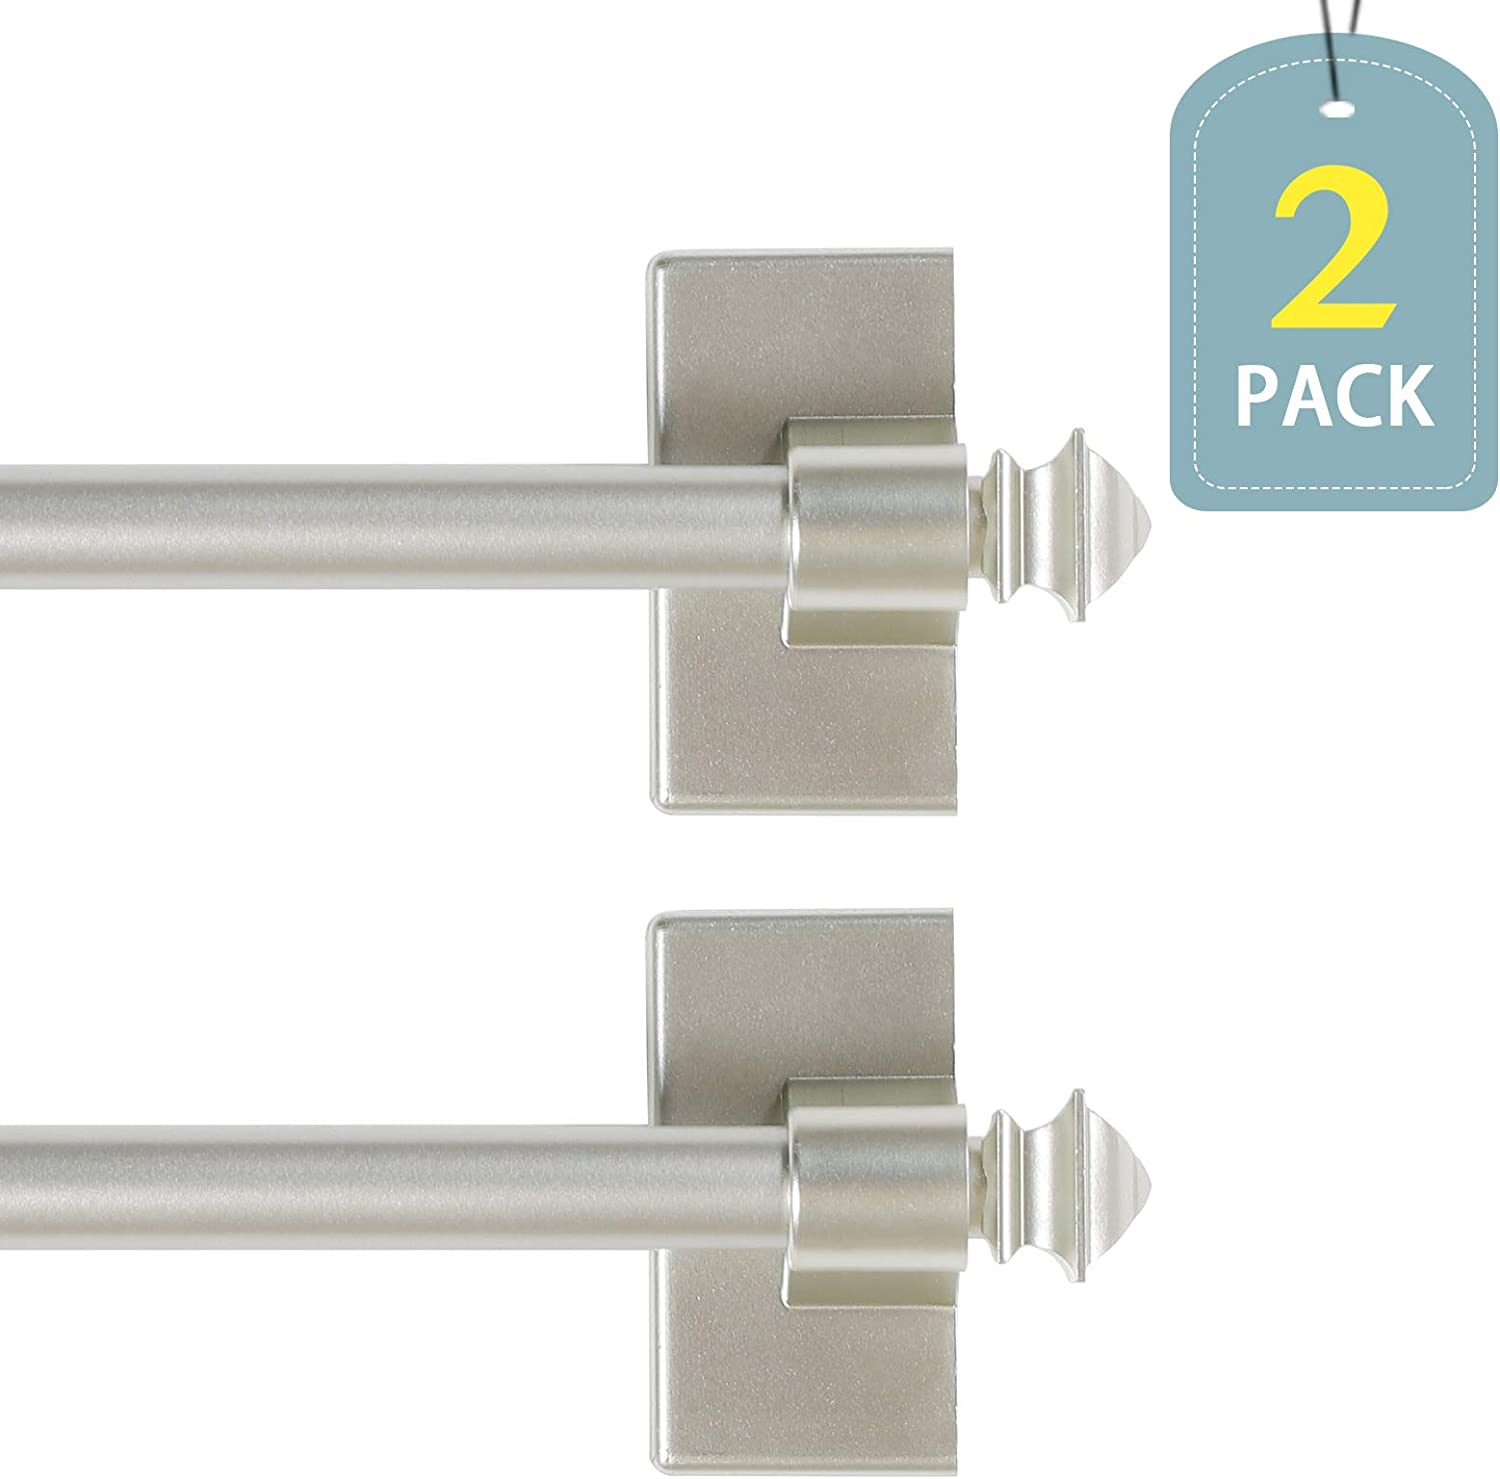 "H.VERSAILTEX Magnetic Curtain Rods Adjustable Length from 16-28 Inch with Square Ends for Small Windows, 1/2"" Diameter, Nickel, 2 Packs"